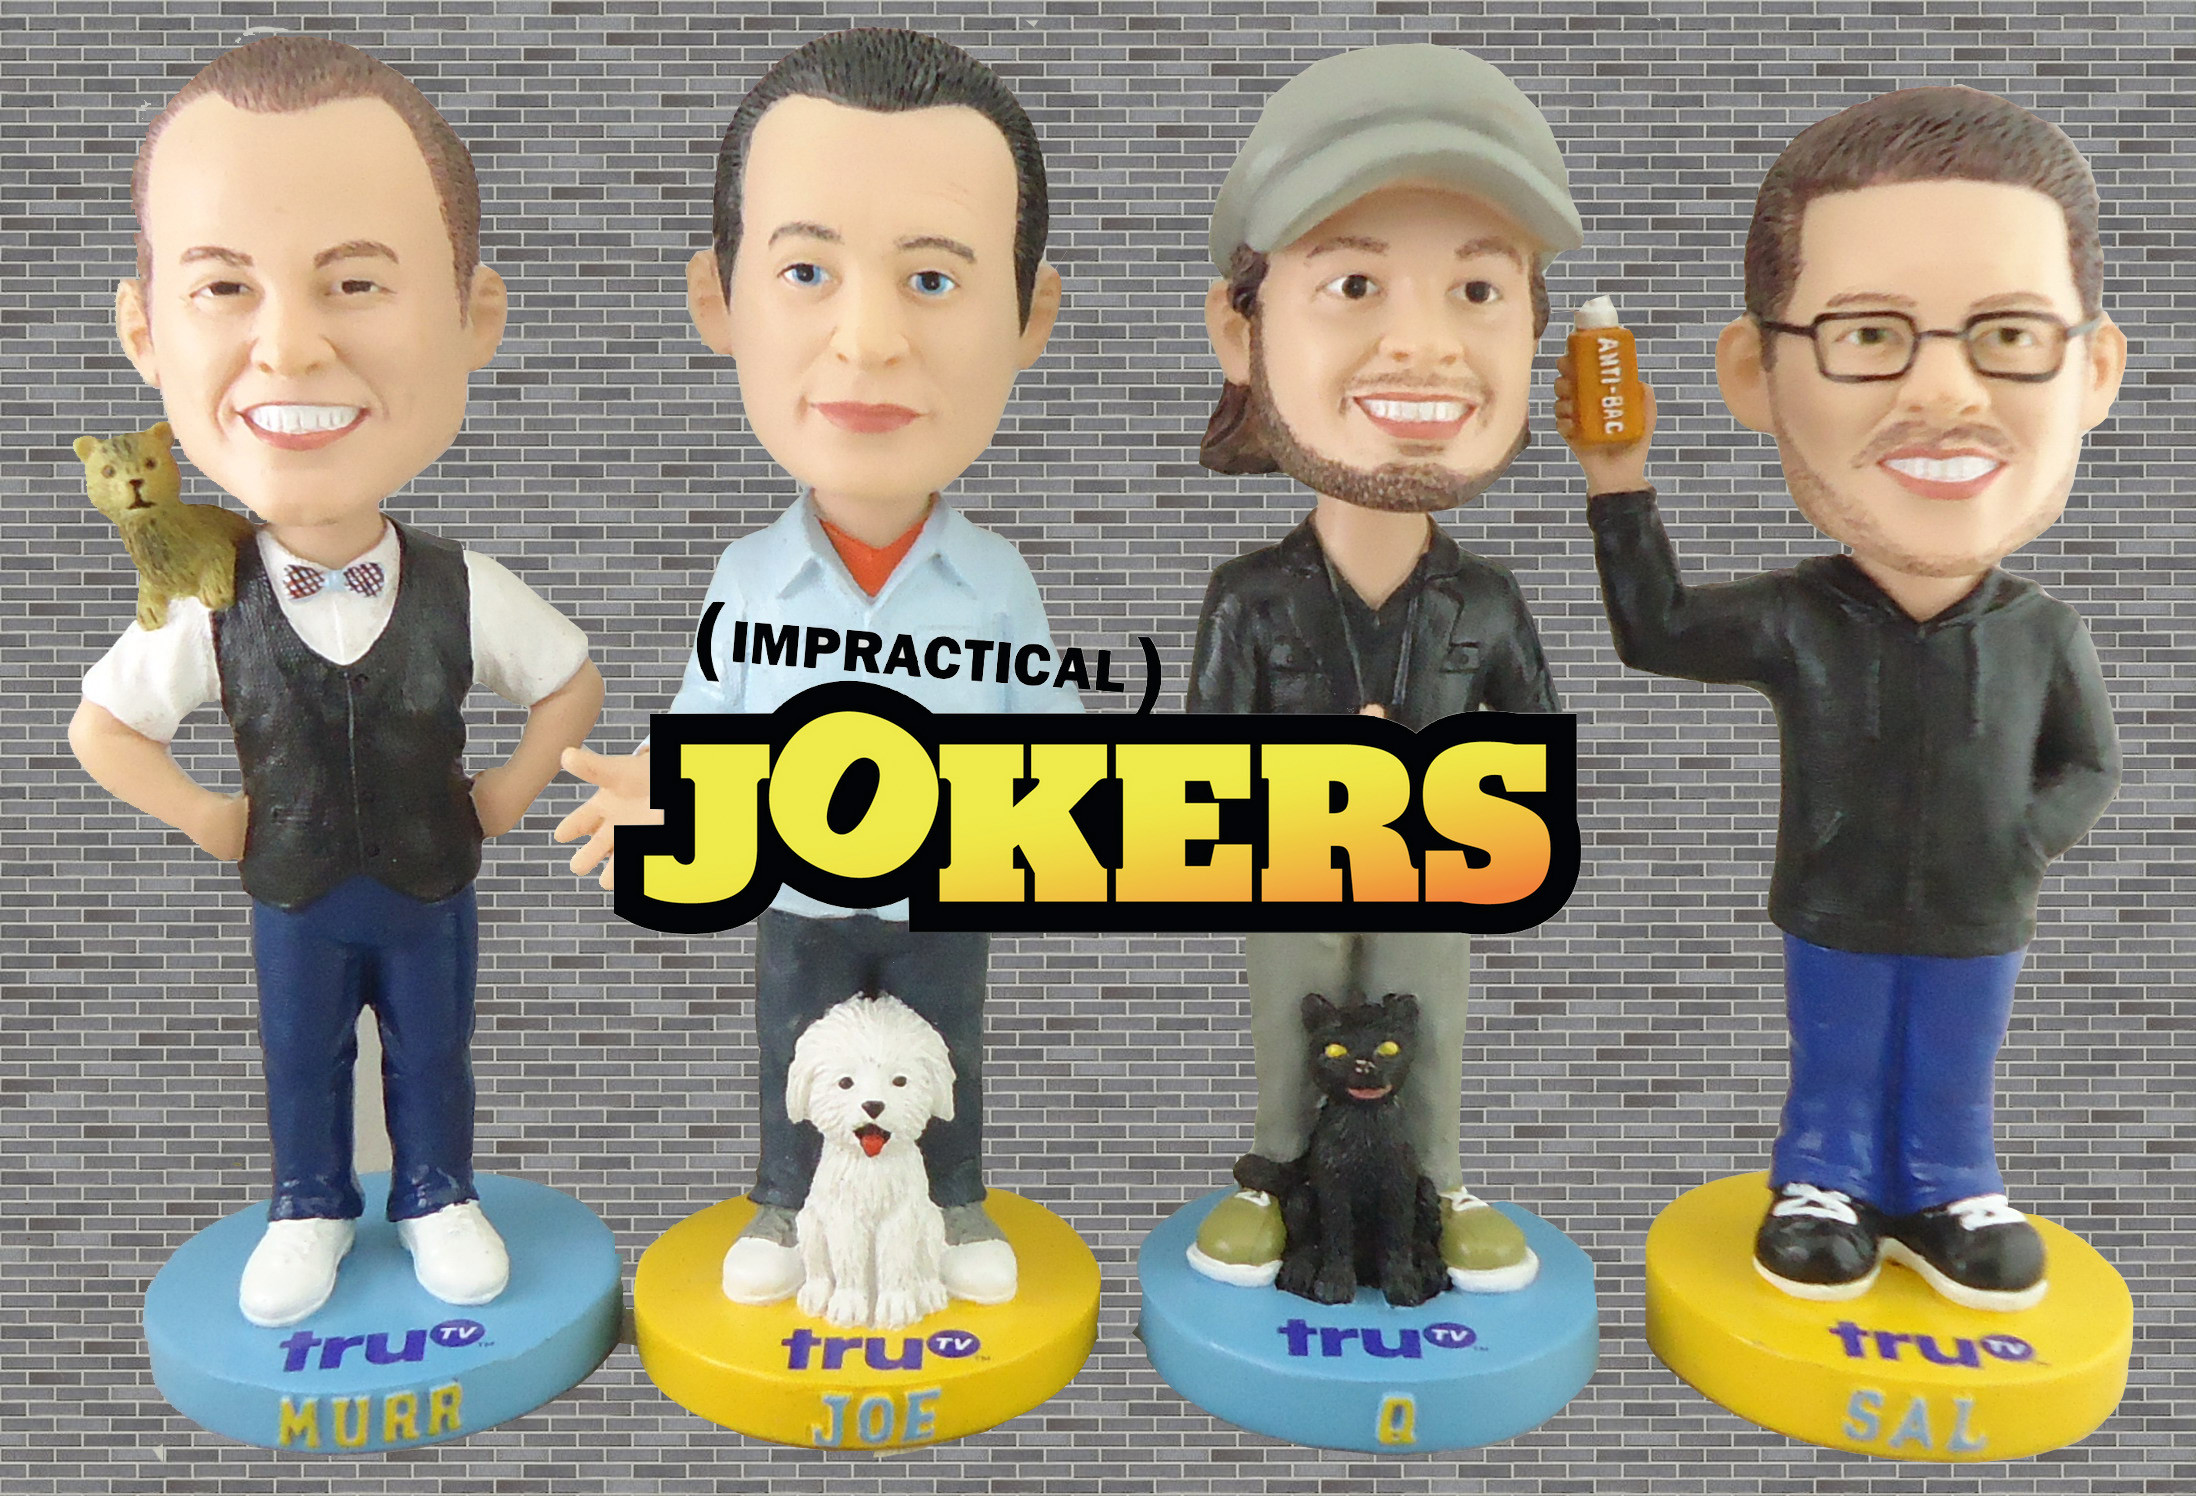 2196x1496 impractical jokers bobbleheads Рbrooklyn cyclones Рnew york mets. Th̬se  are th̩ things that